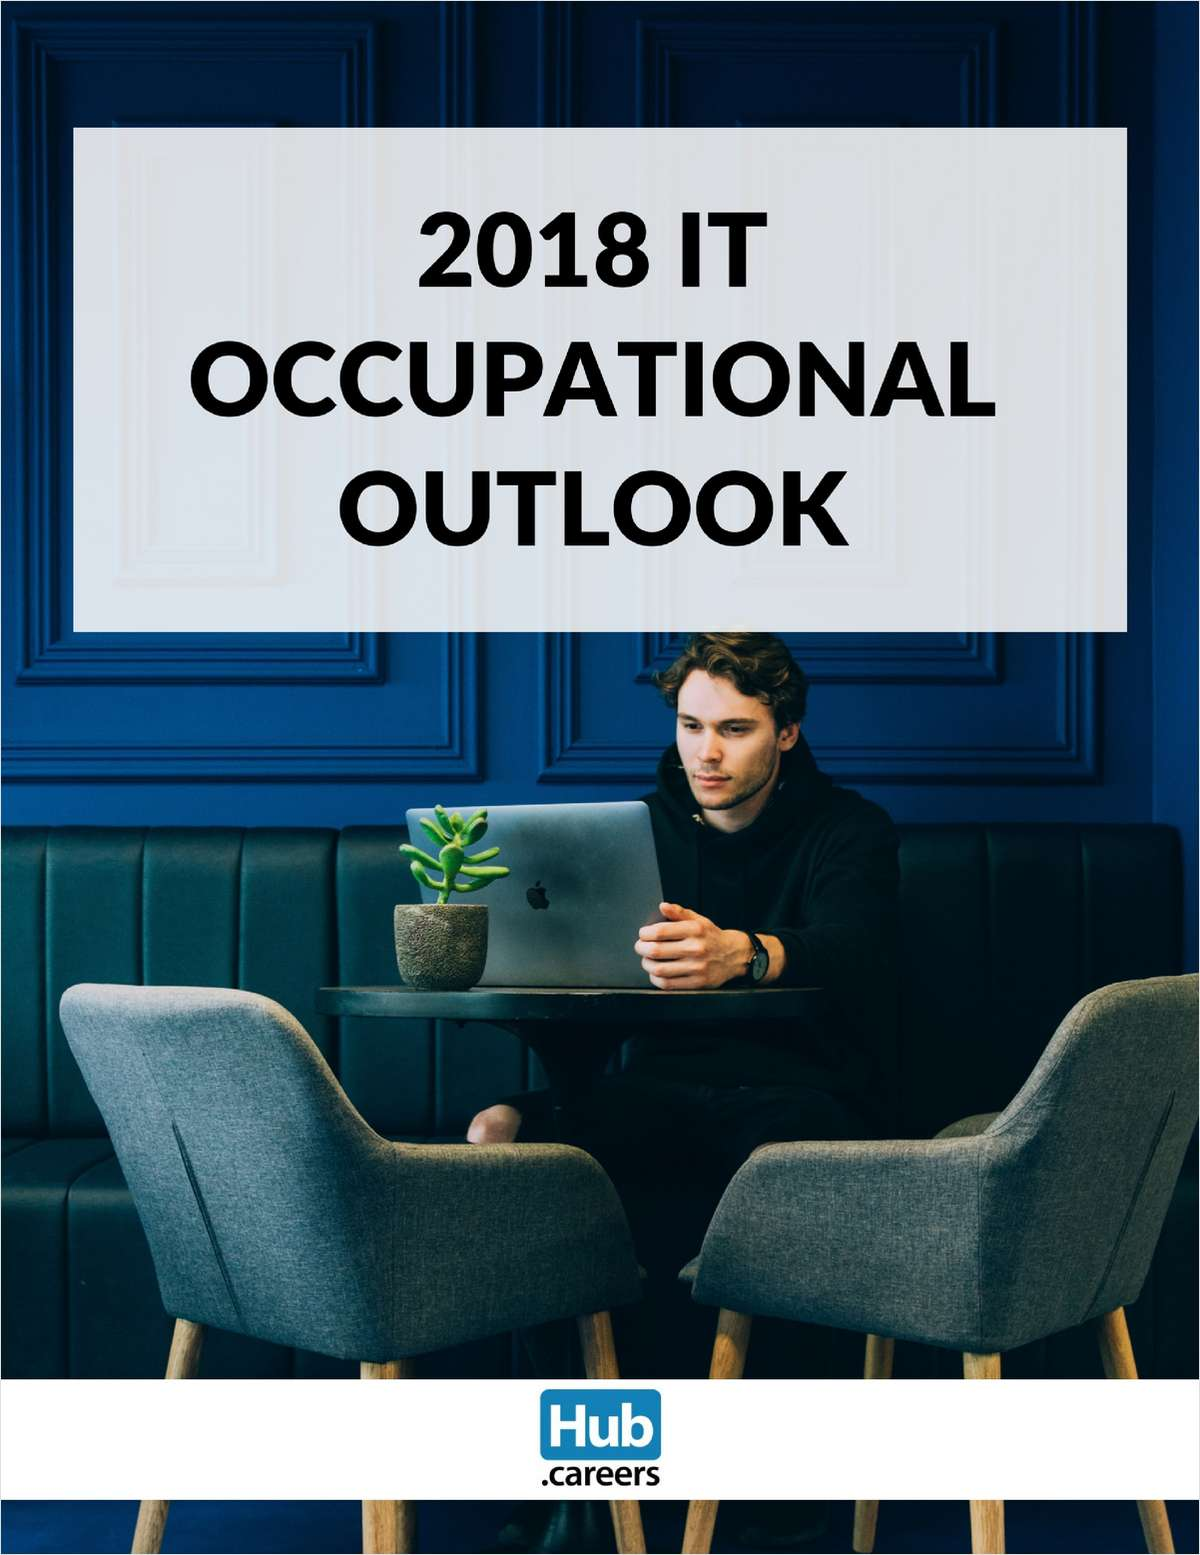 2018 IT Occupational Outlook